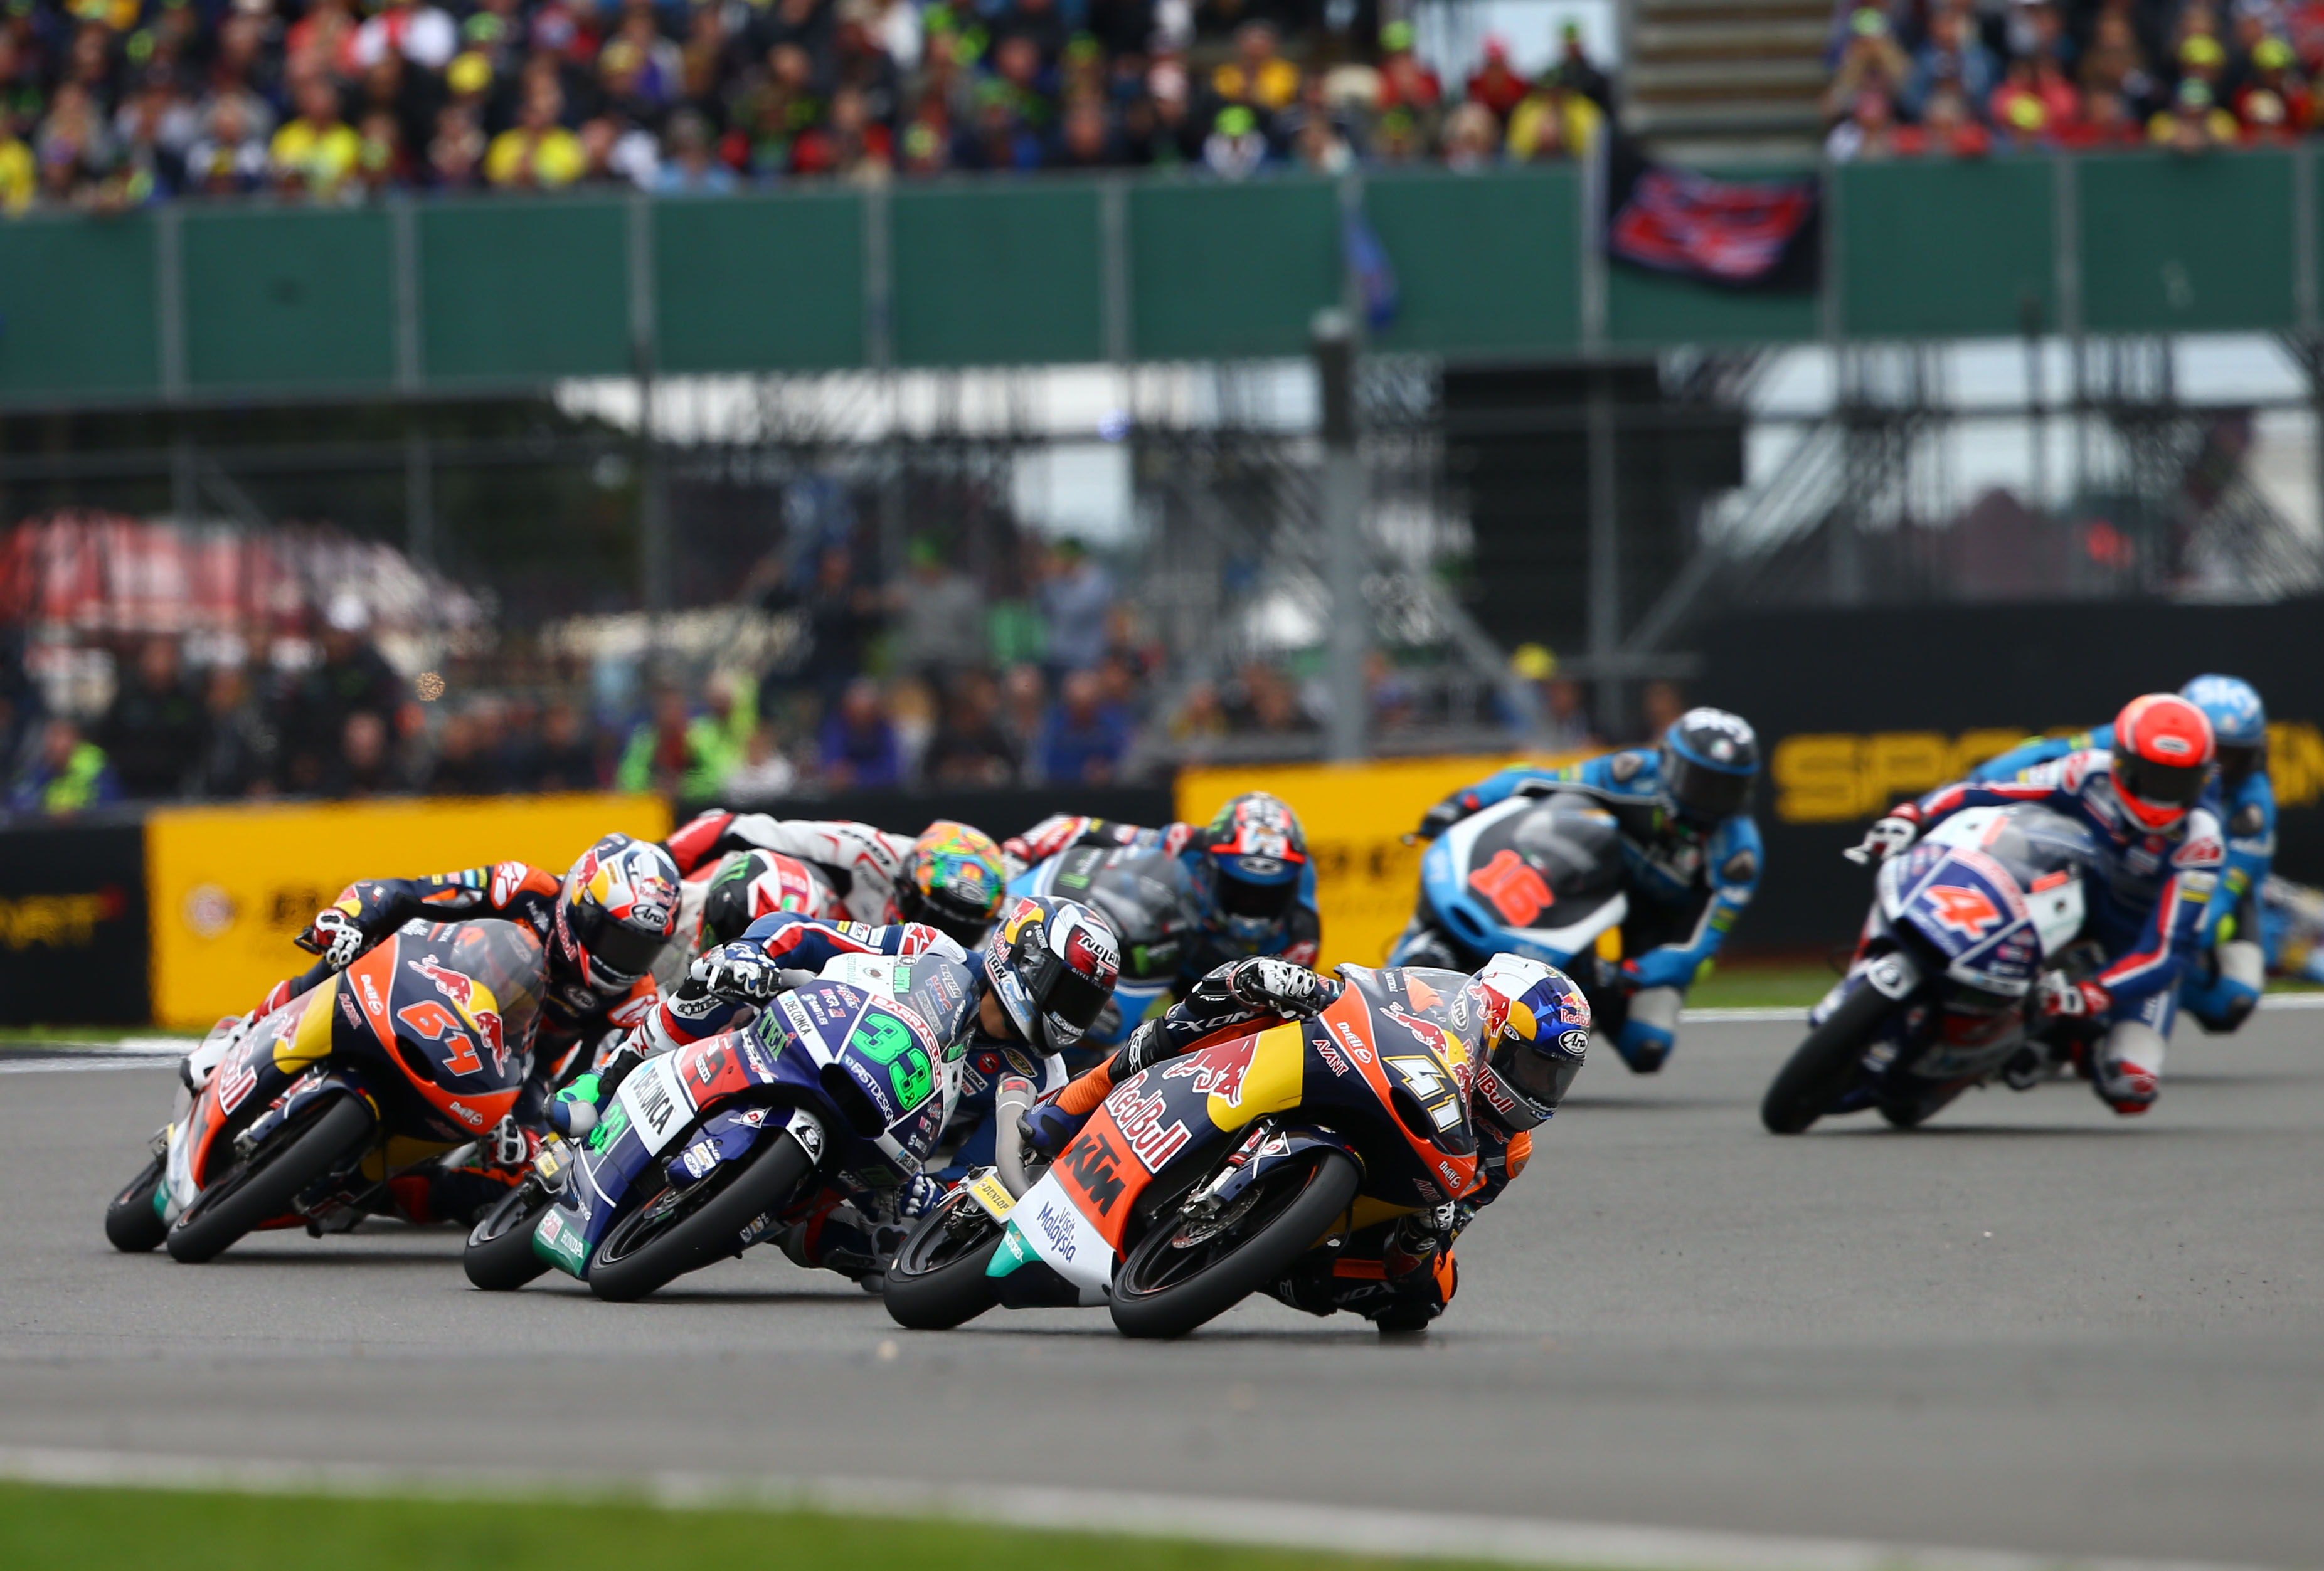 Rd 12 Silverstone 3rd, first podium in Moto3